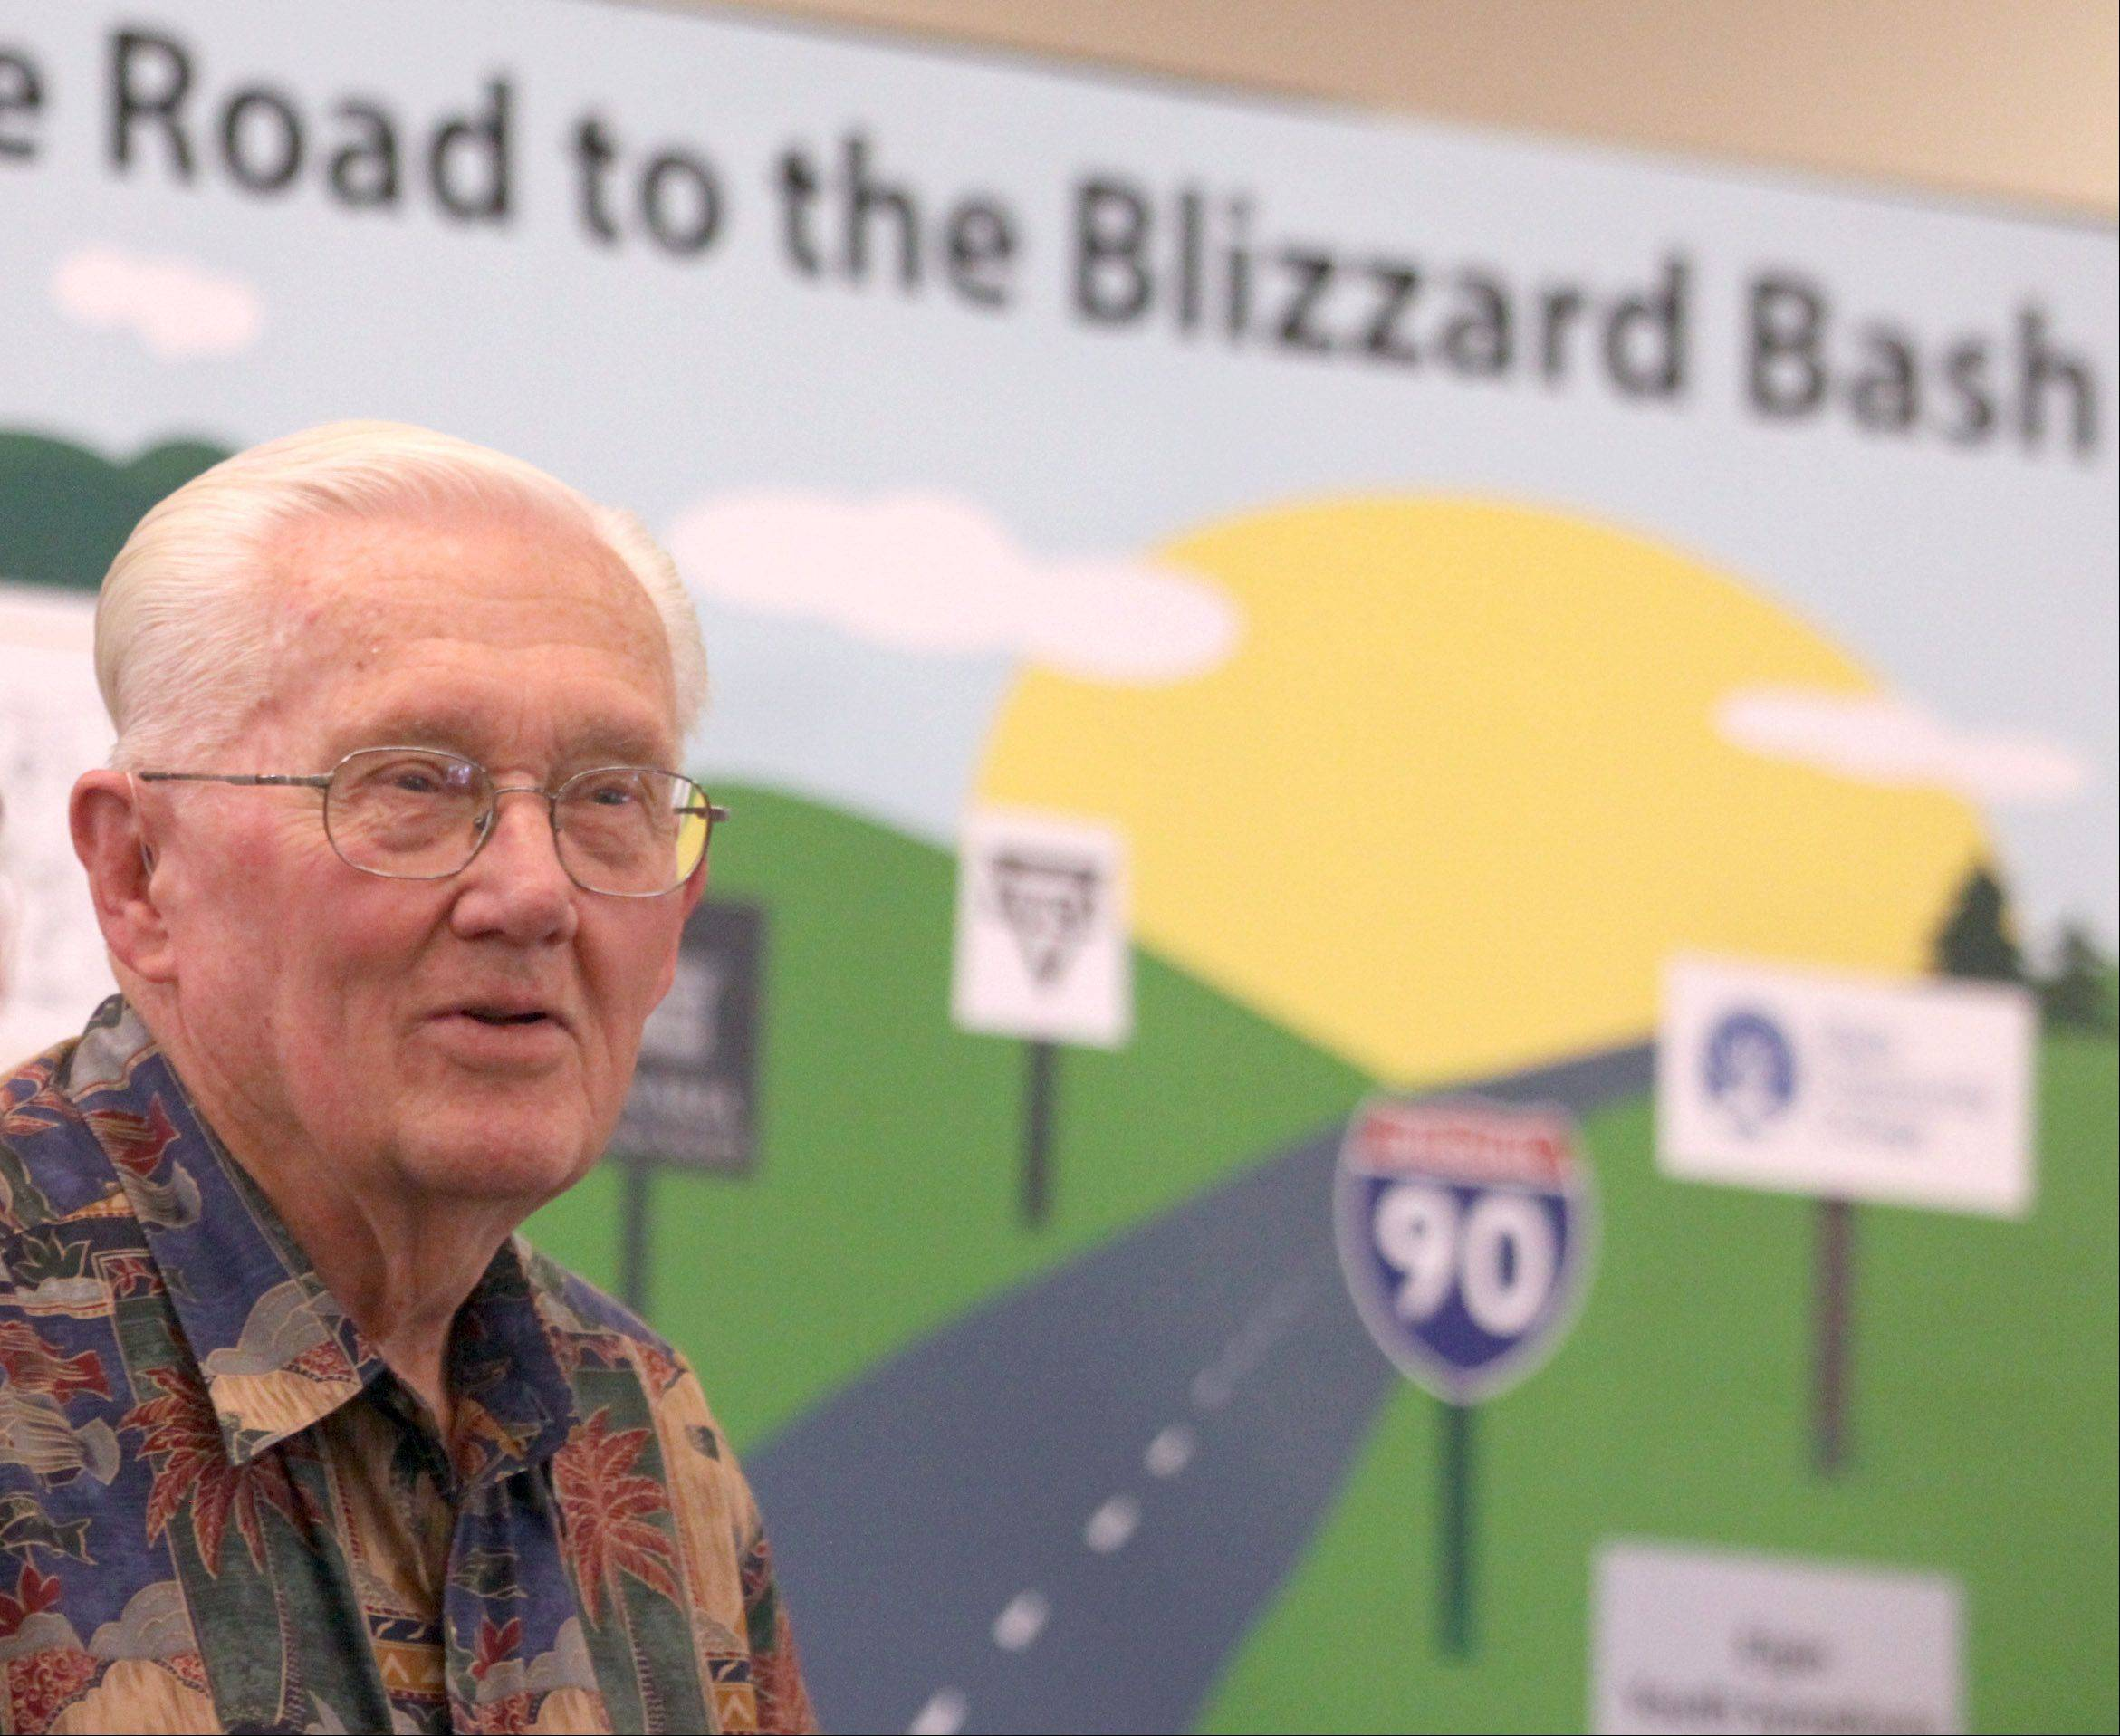 "Harry Blizzard watches as participants take part in a ""Blizzard Bee"" in the lobby of the Gail Borden Public Library in Elgin. The event of trivia on Blizzard's life was arranged to honor Blizzard on the occasion of his 85th birthday, as well as promote the upcoming Blizzard Bash Sunday, June 17, at Elgin Community College's Blizzard Theatre."